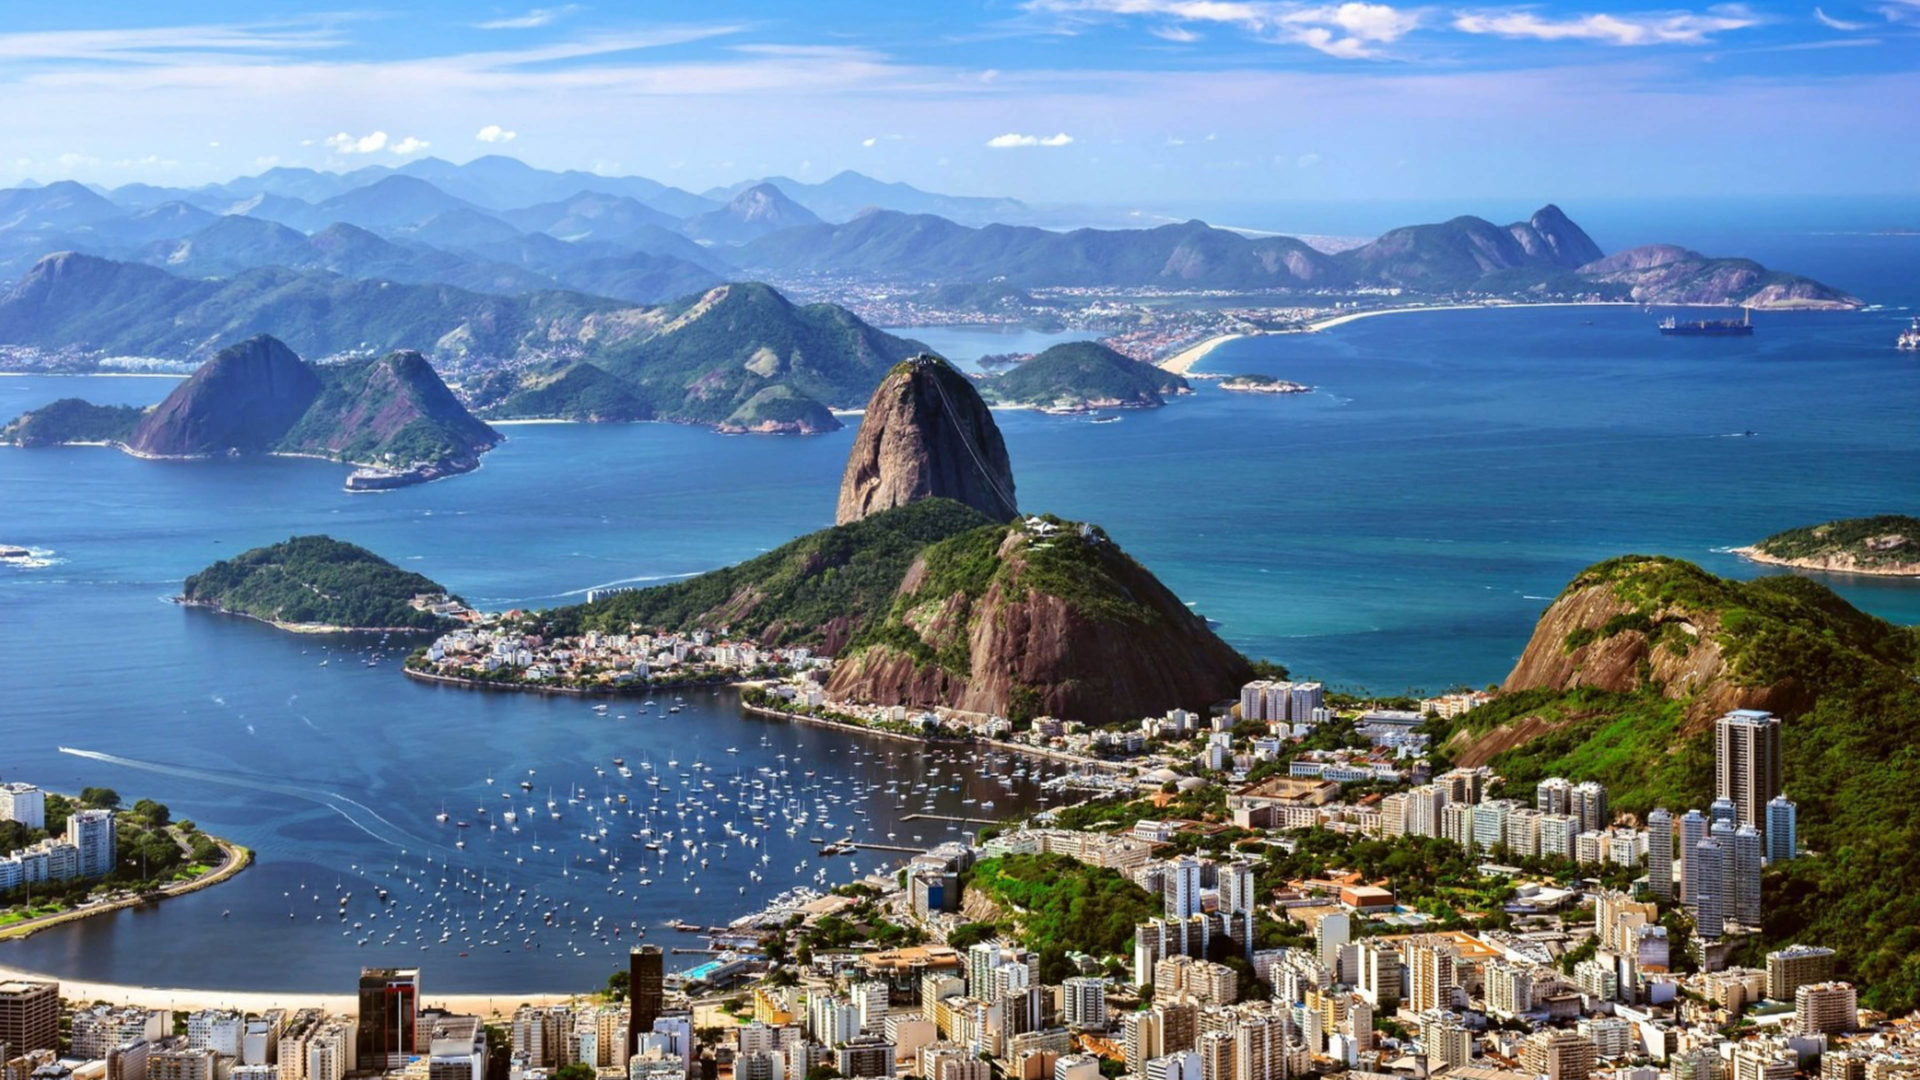 Android Wallpaper Hd 1080p Rio De Zhaneiro Brazil Mountains Sea City Skyline Hd